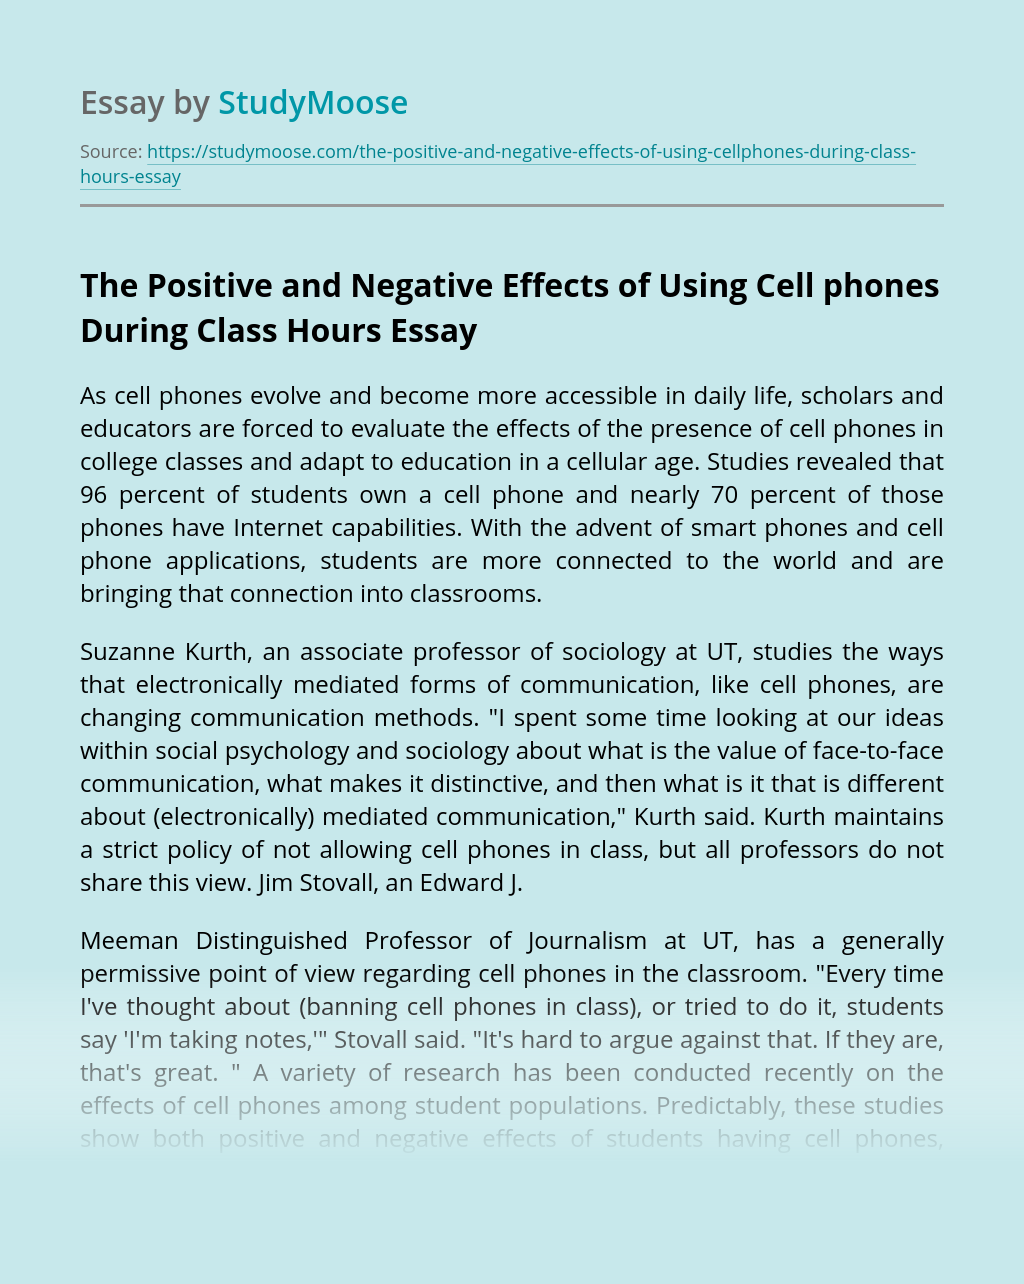 The Positive and Negative Effects of Using Cell phones During Class Hours